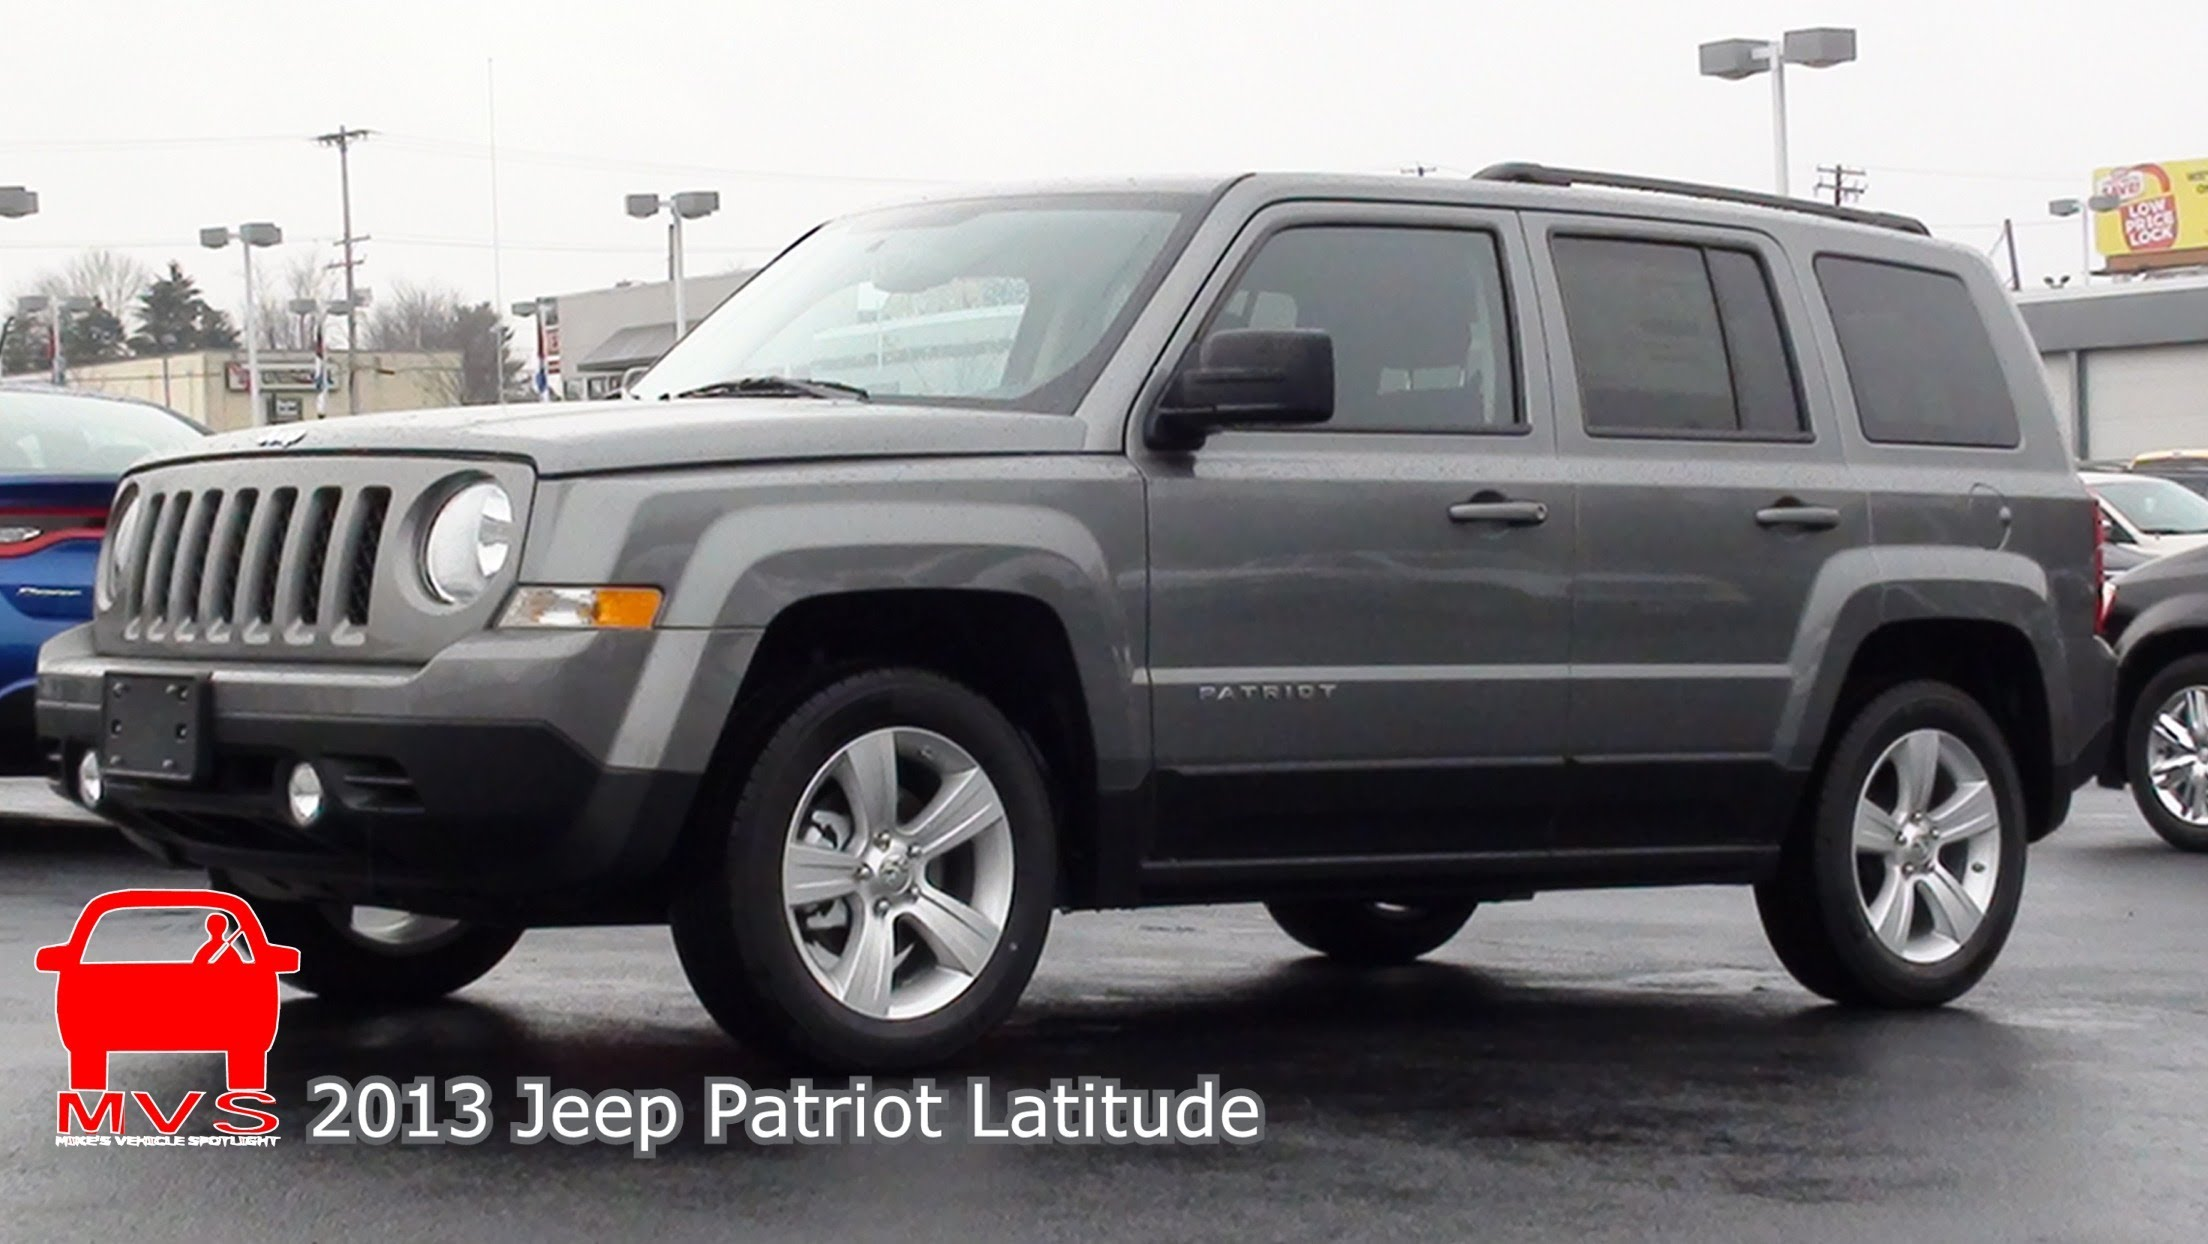 2013 Jeep Patriot #20